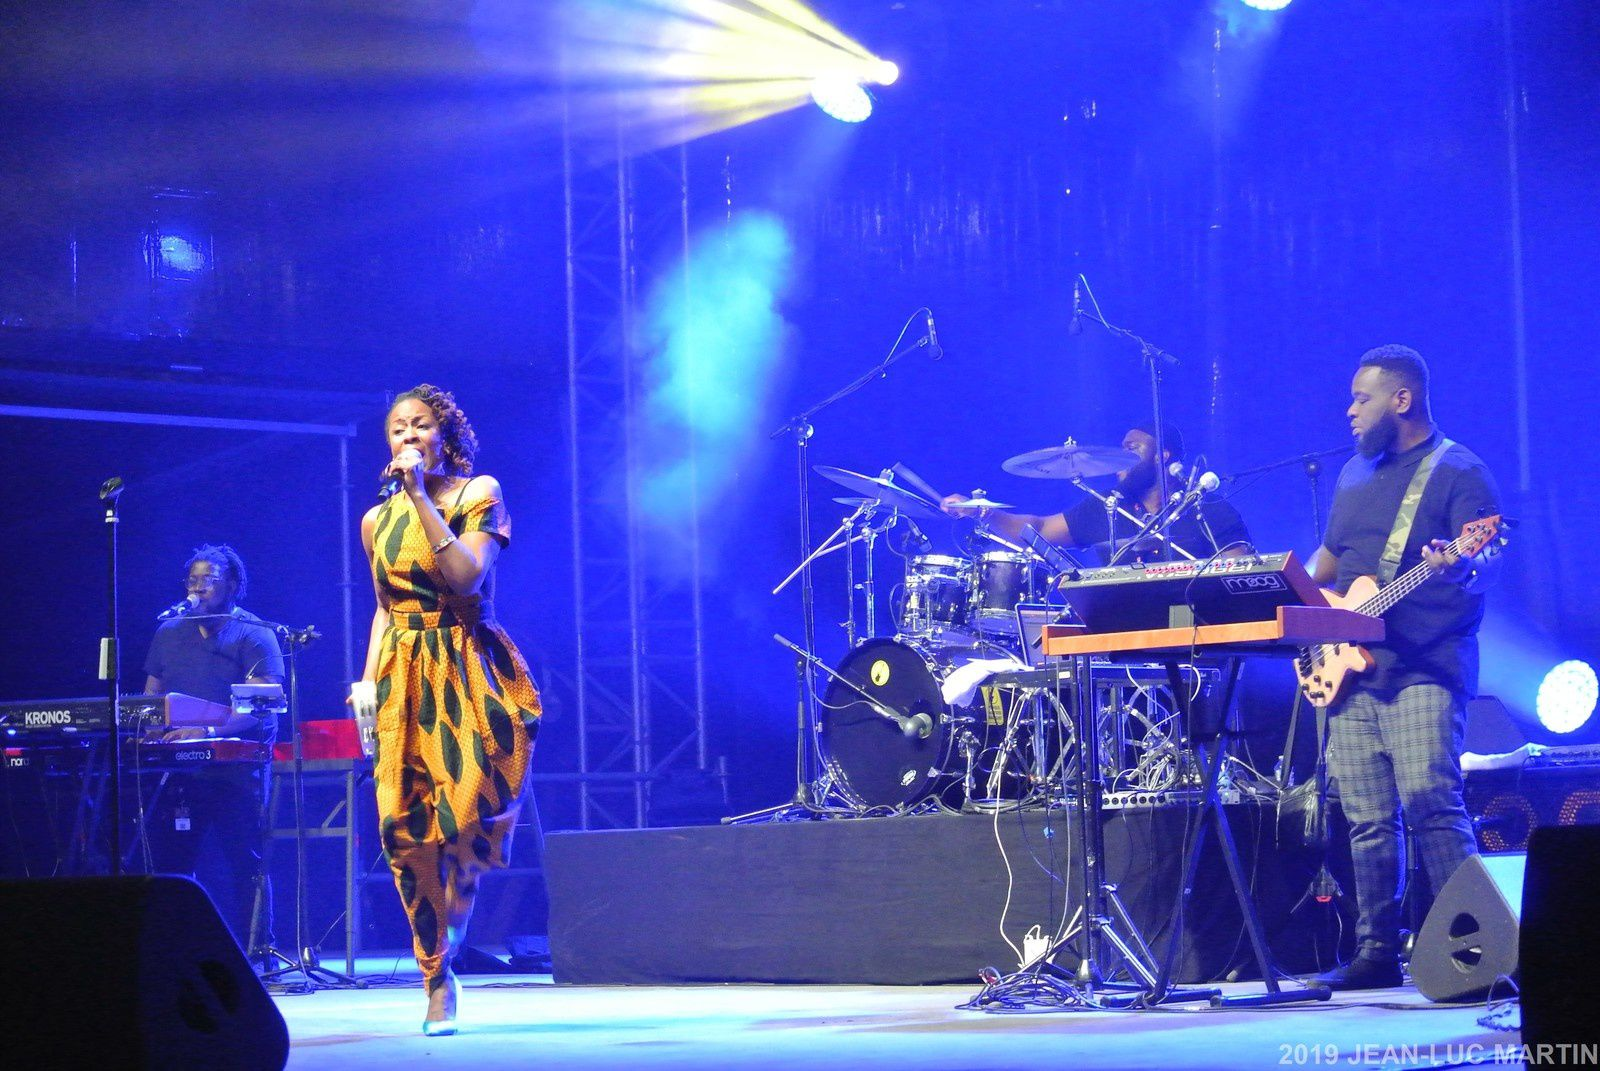 TANIKA CHARLES AND THE WONDERFULS A RIO LOCO A TOULOUSE LE 15/6/2019